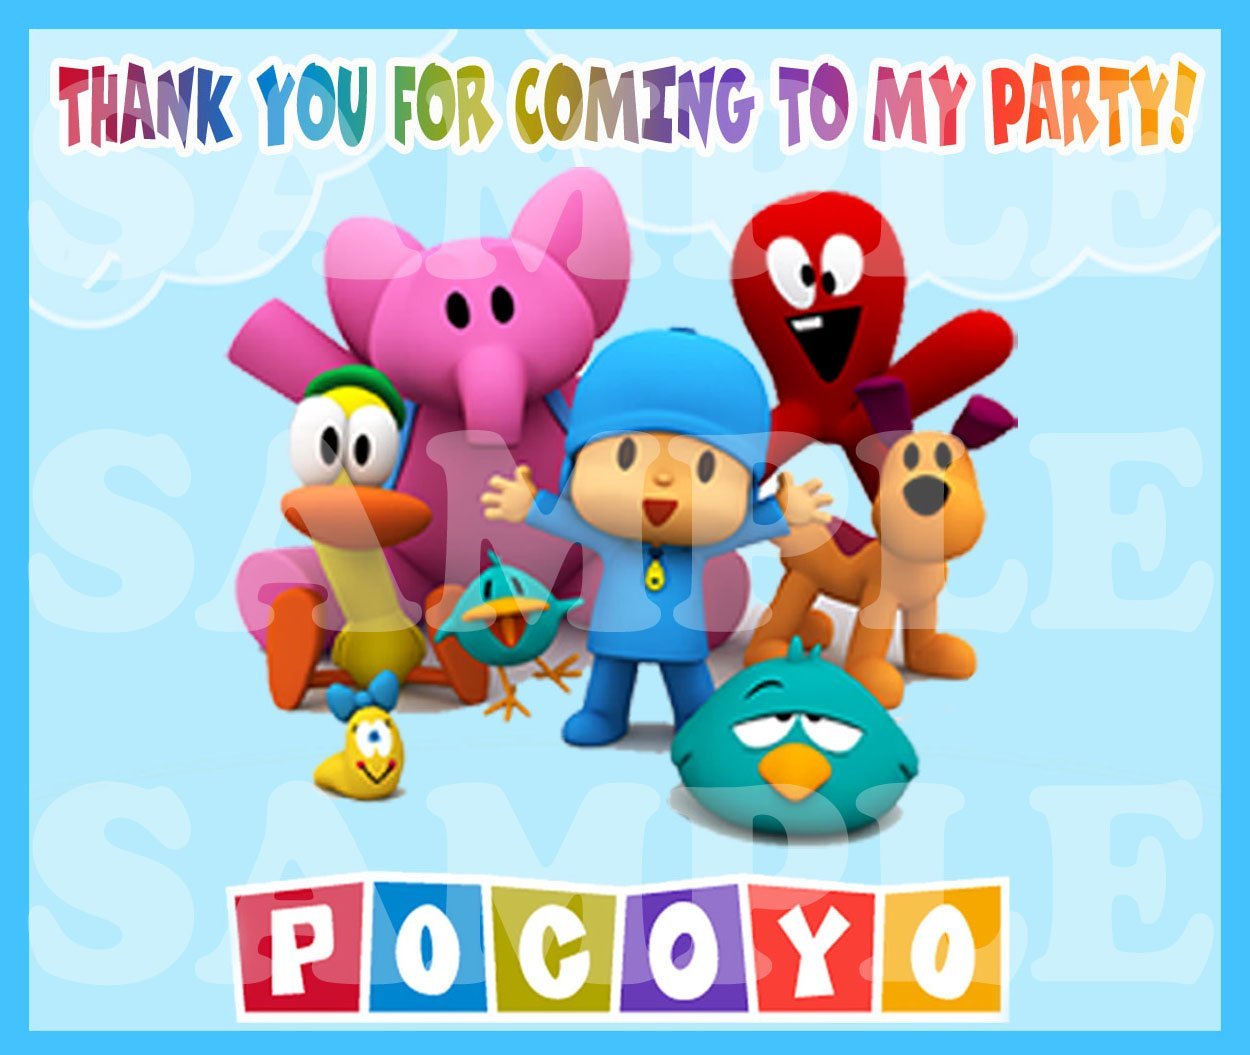 Amazon.com: Pocoyo fiesta decoraciones bolsa de regalo ...